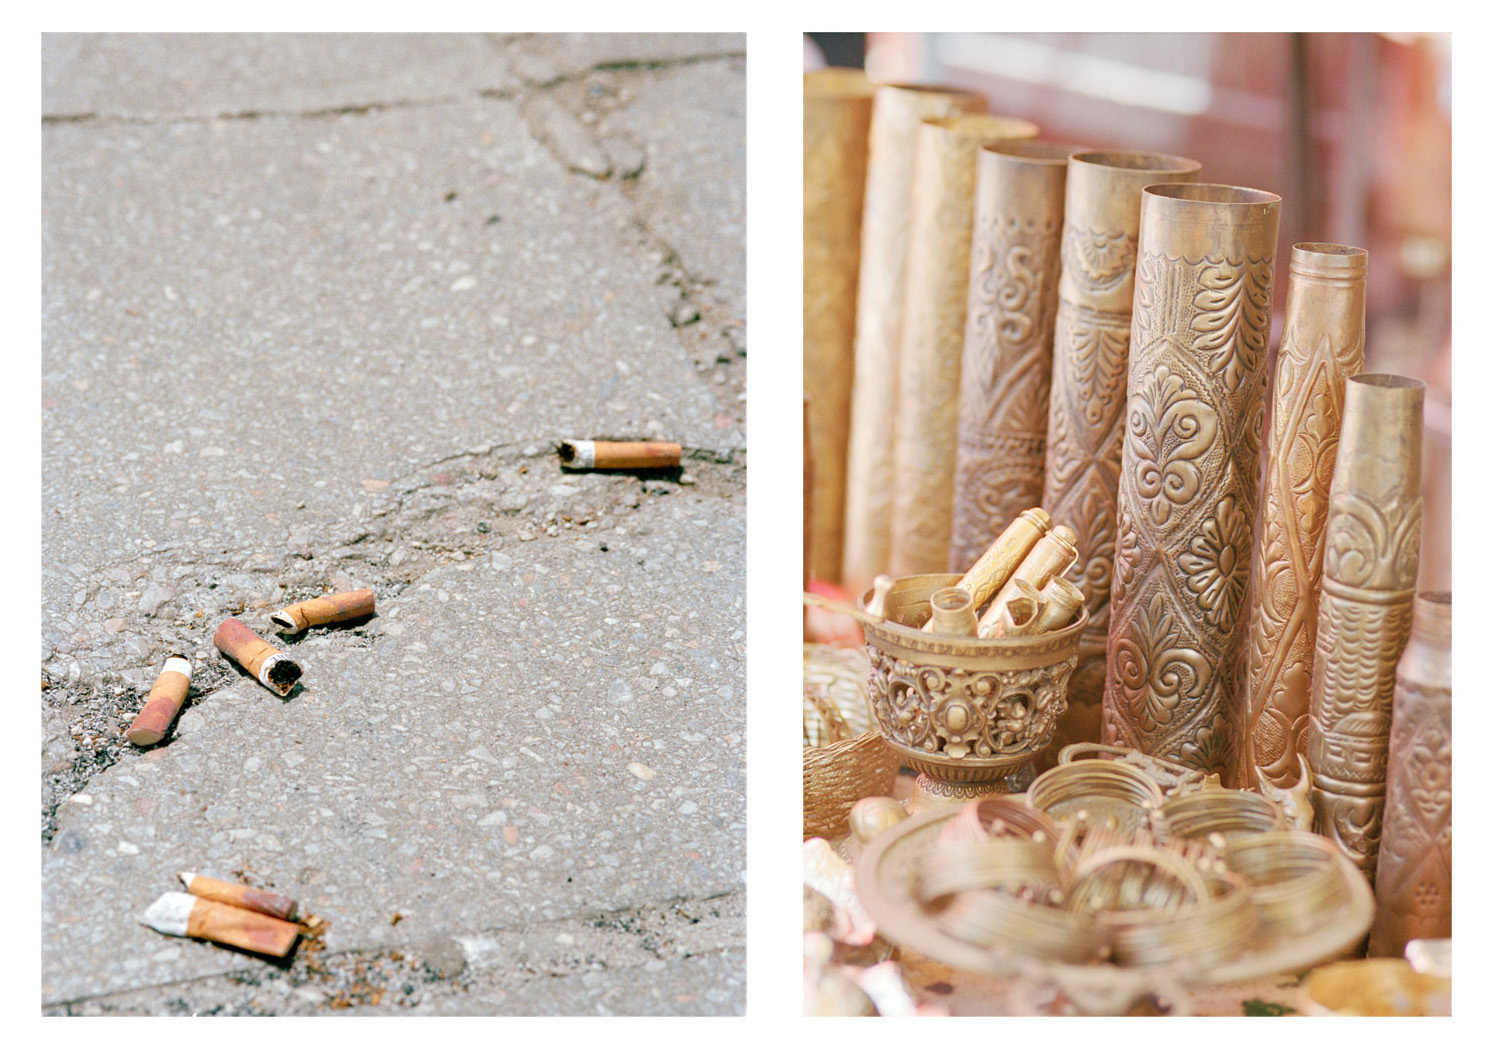 Details of a city: cigarettes with the same lipstick stain and used mortar shells, polished and decorated to be sold as souvenirs.